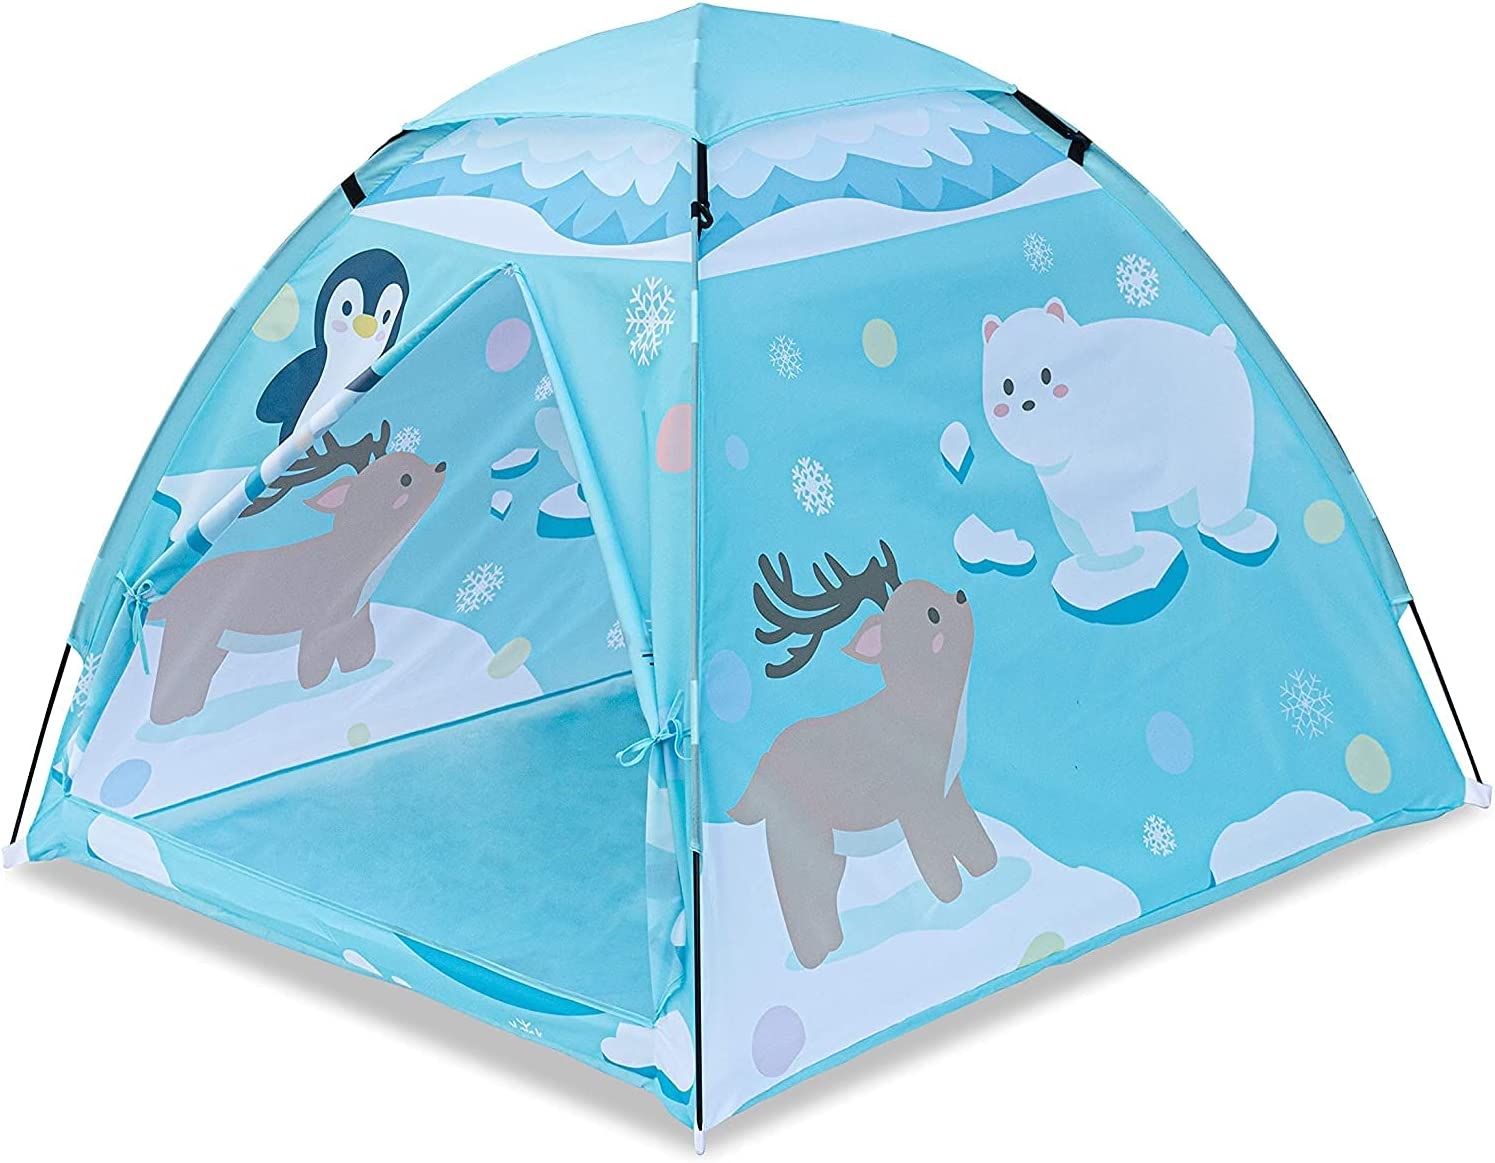 CloverCat Play Tent for Kids Super special price Direct stock discount fo Pop-Up Playhouse Indoor Outdoor